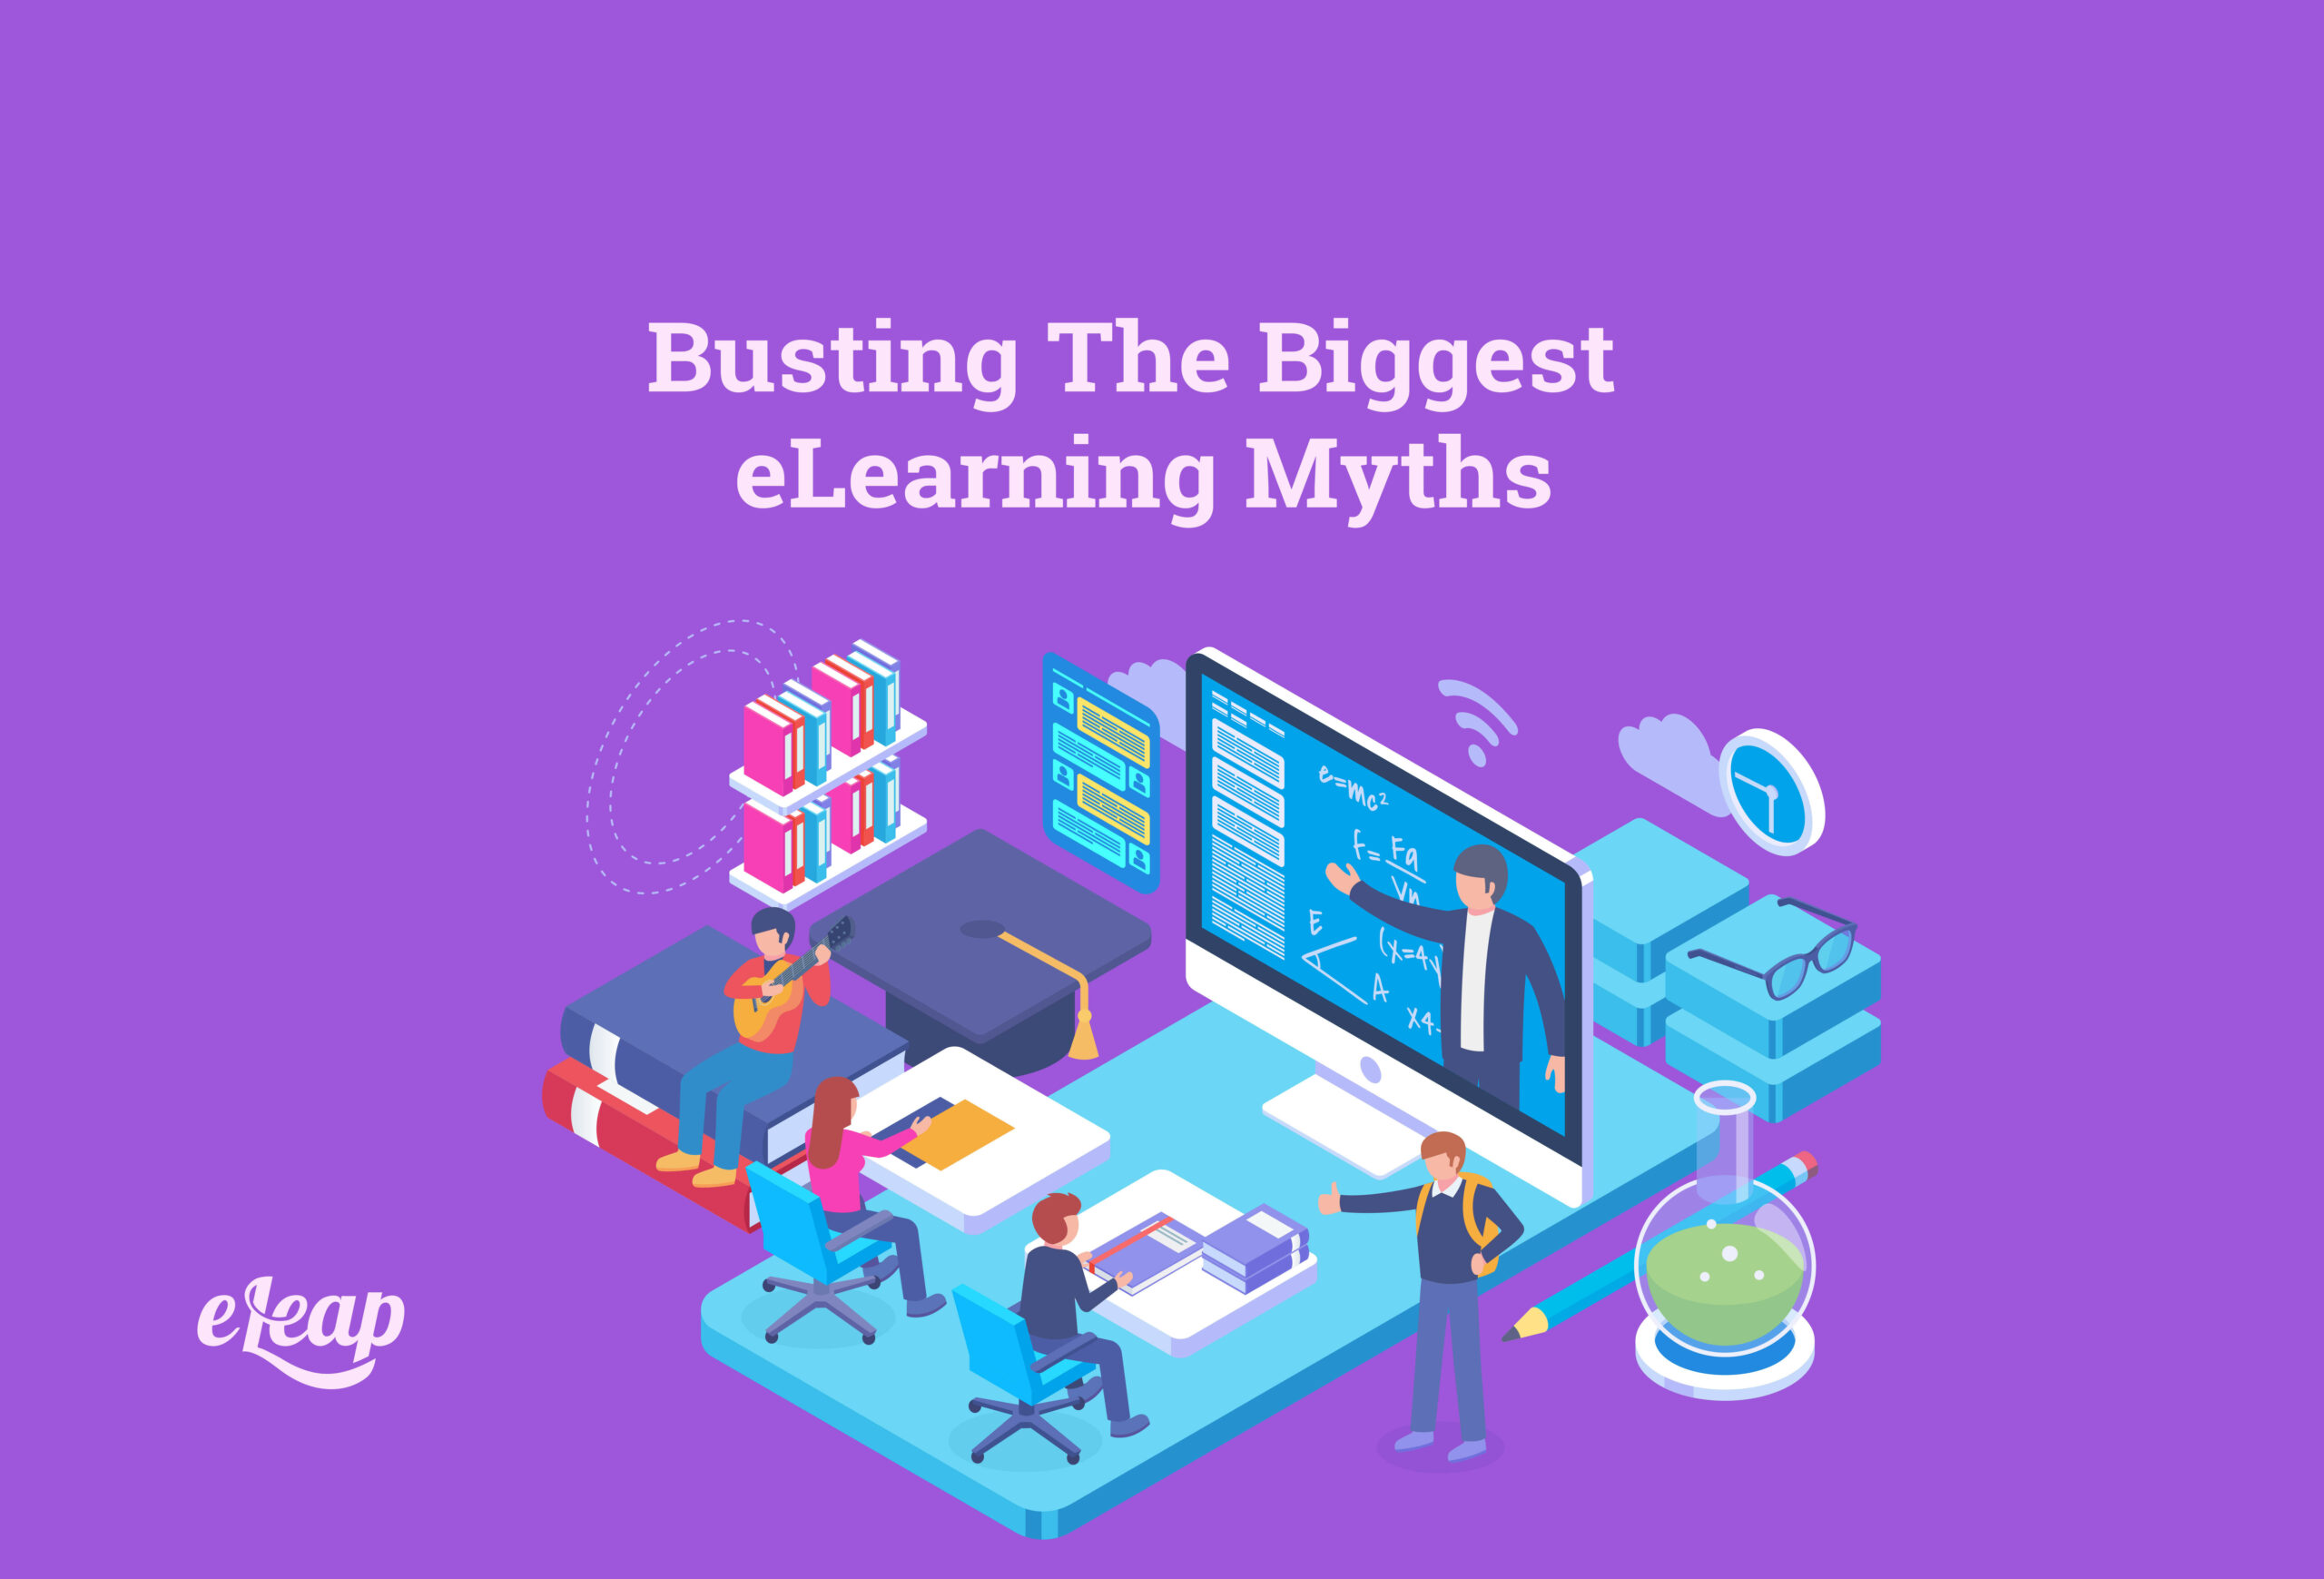 Busting The Biggest eLearning Myths